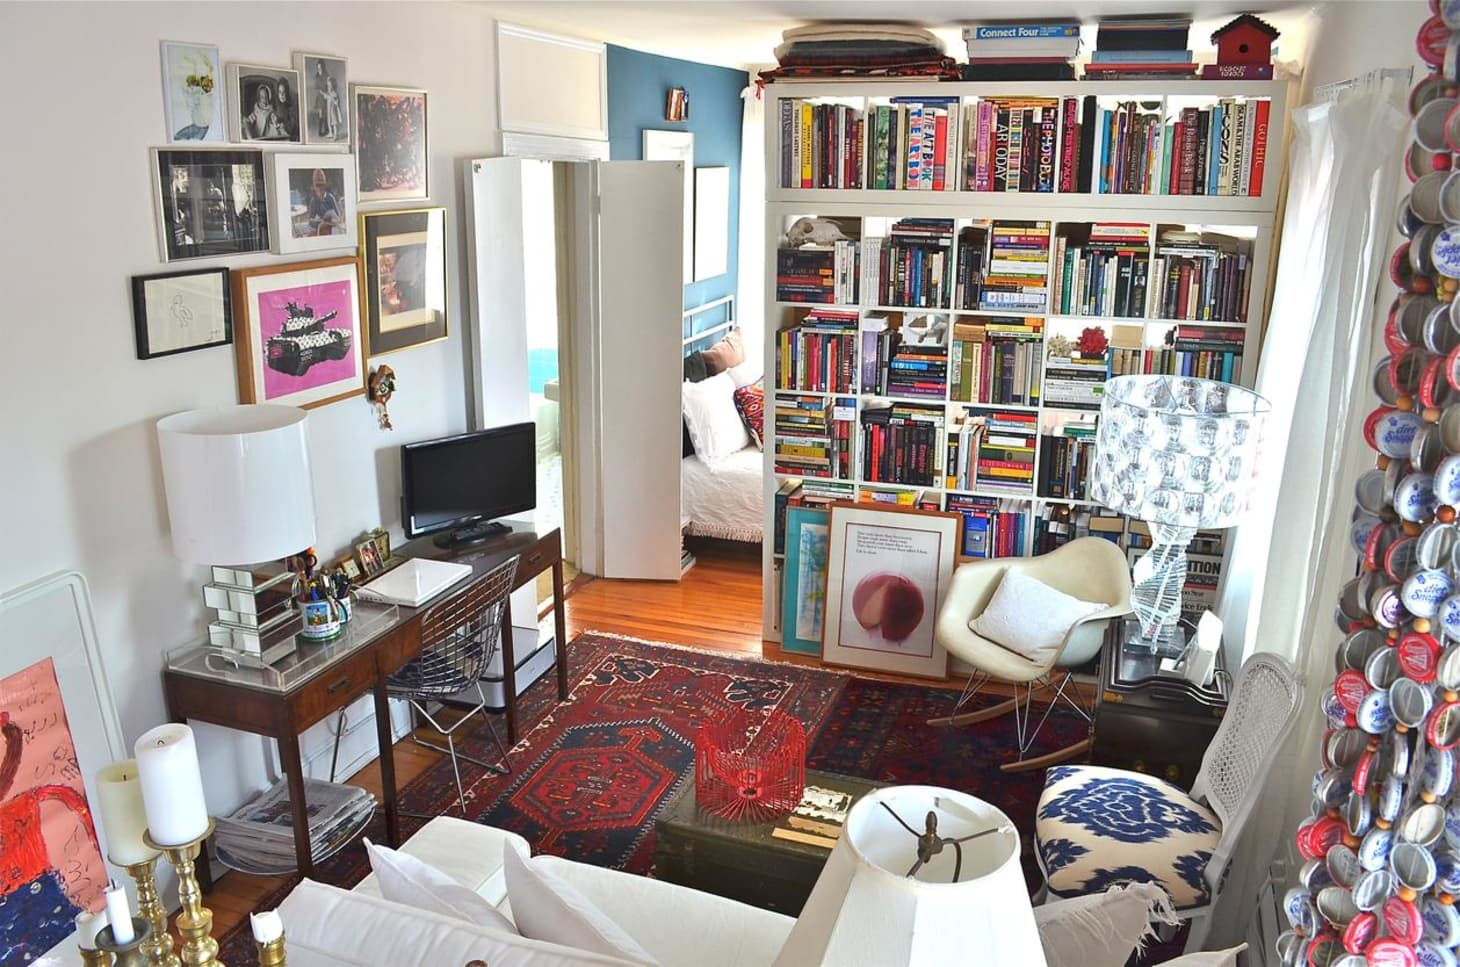 Smart Storage: 10 Ideas From Small Spaces